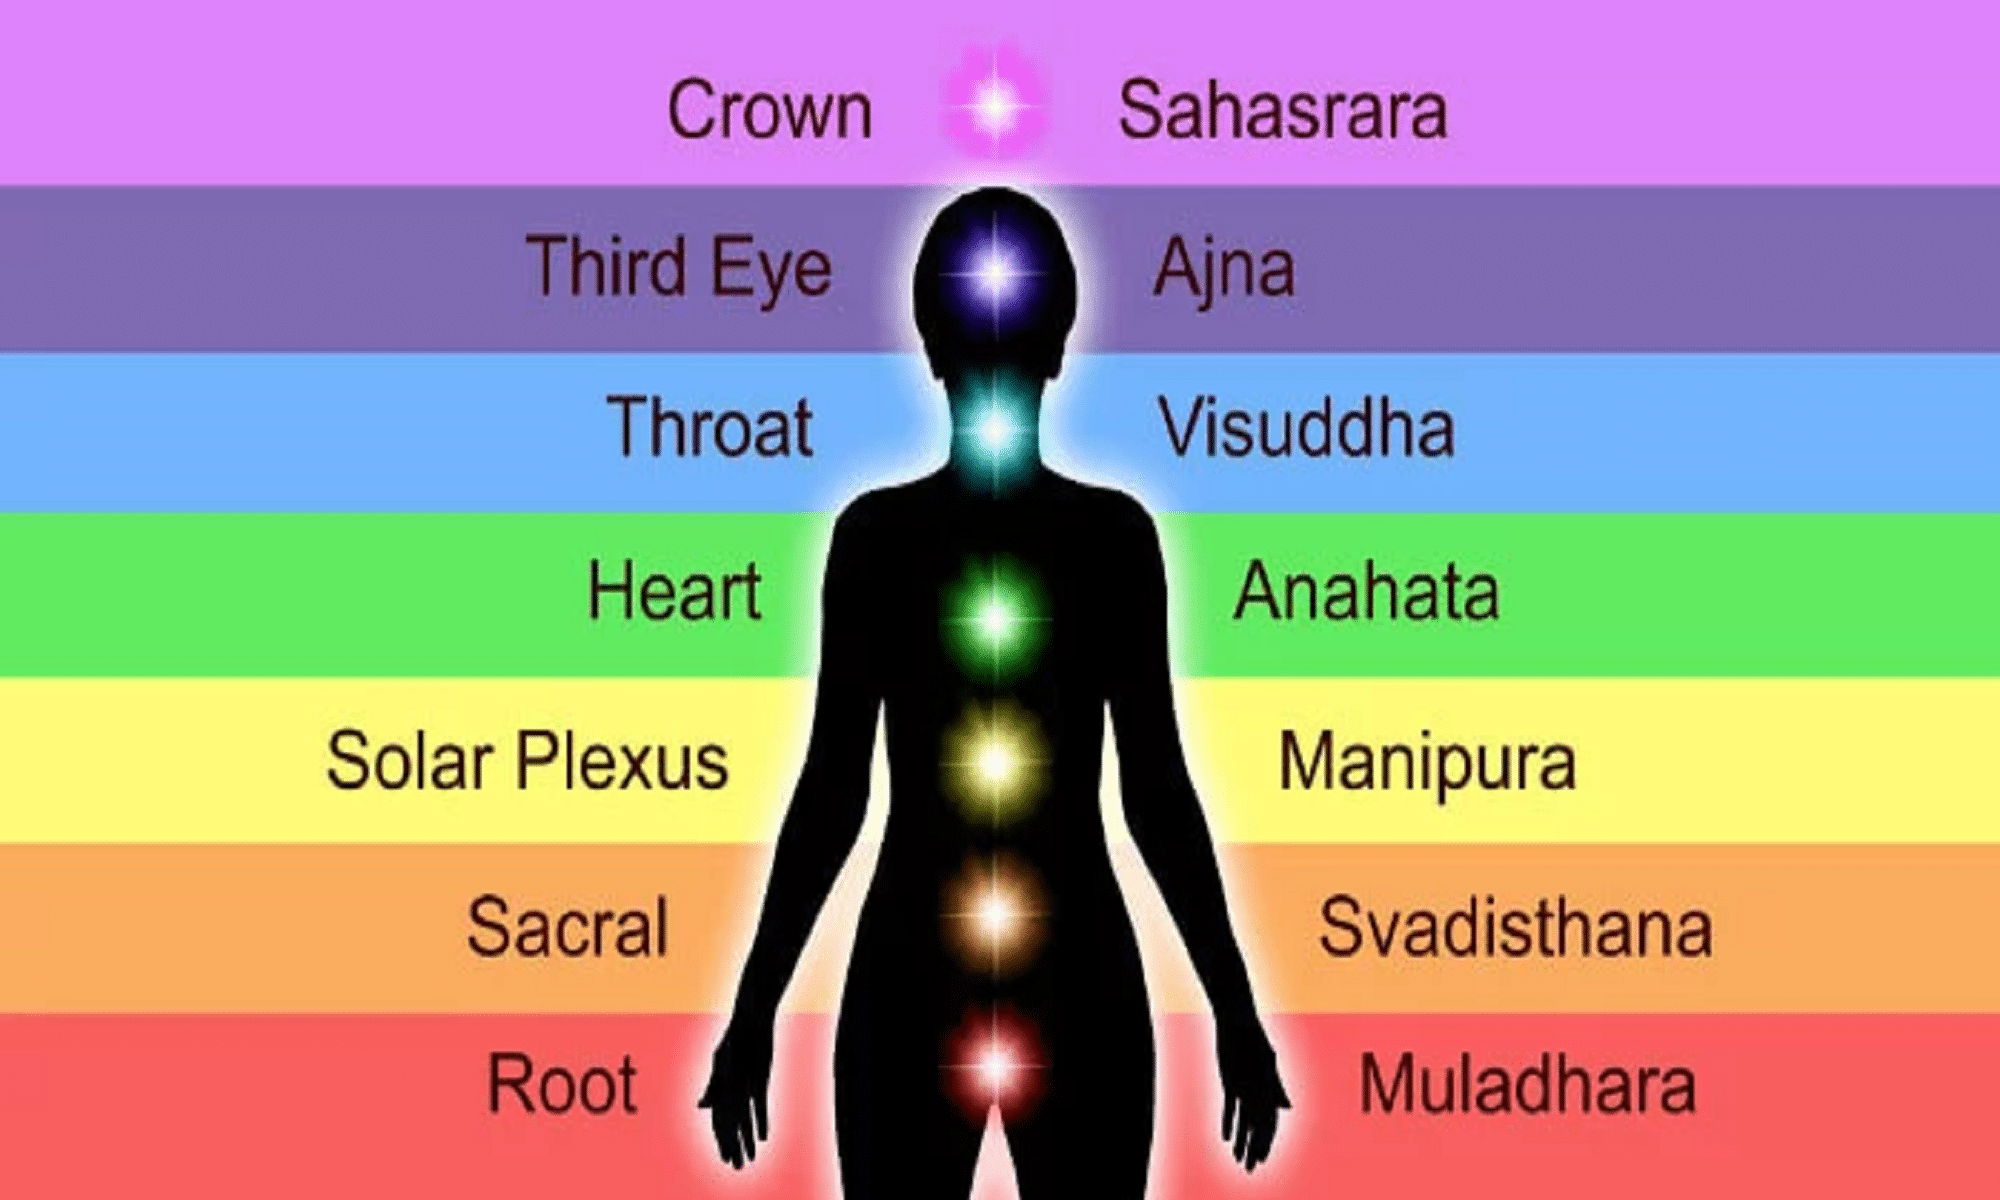 Seven chakras - Which Chakra Do You Need To Work On? - Tantra Nectar